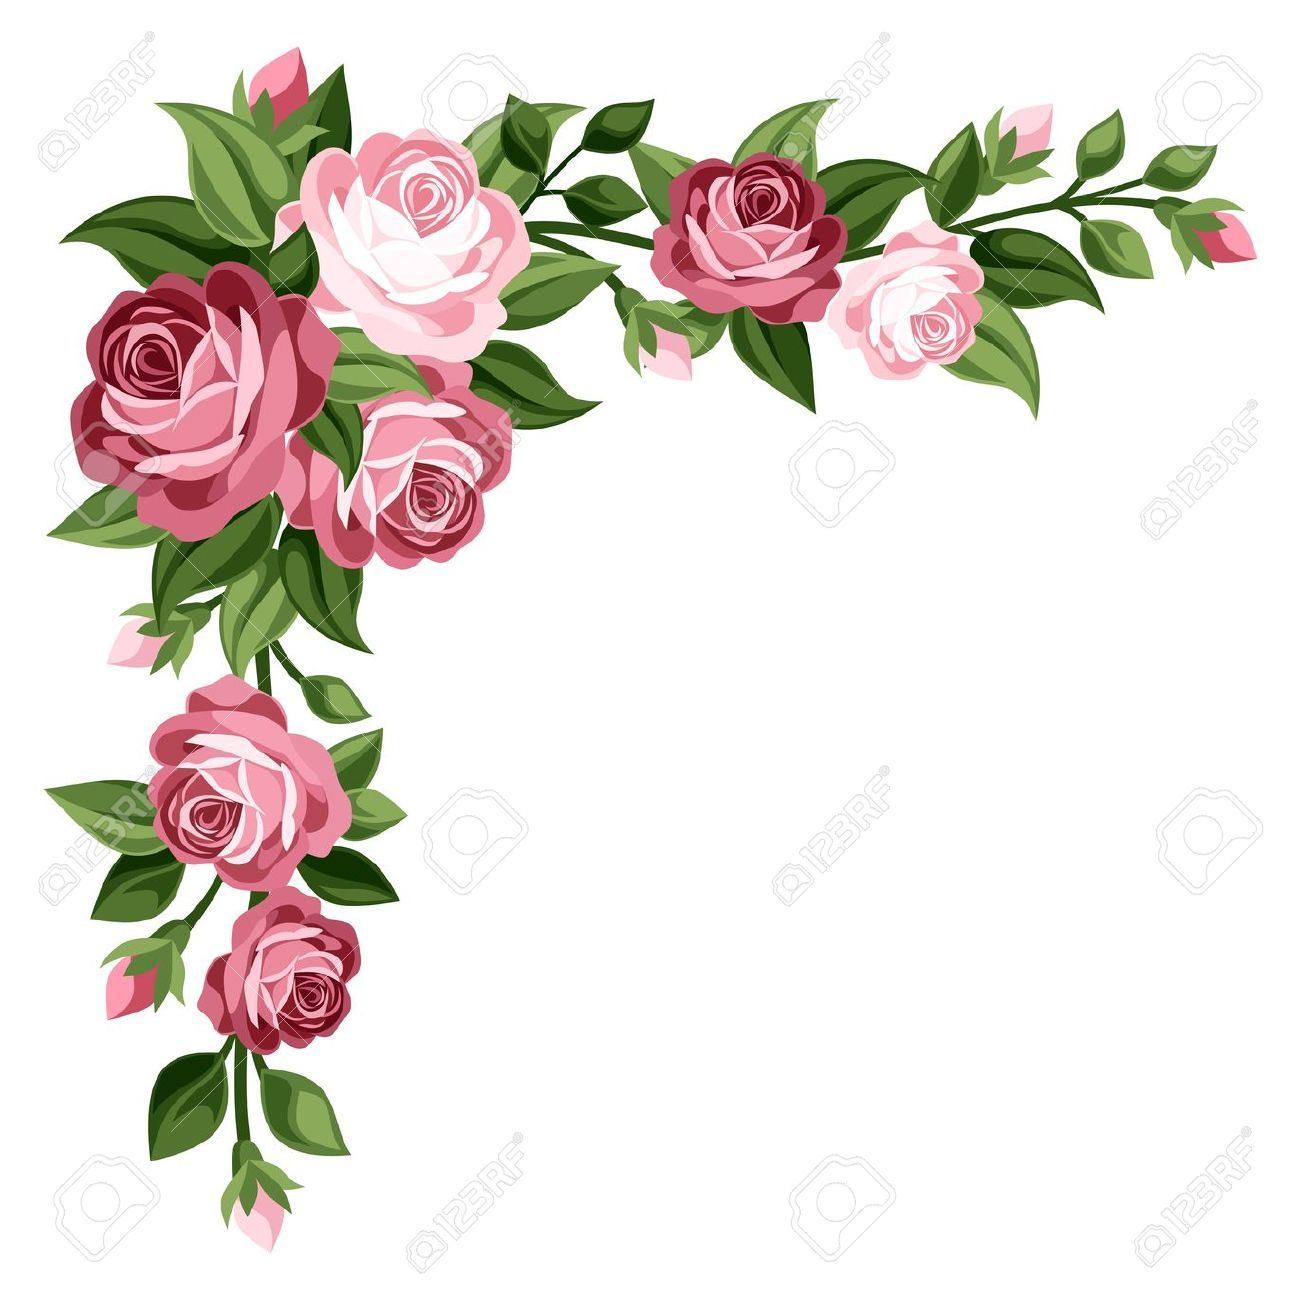 rose flower border clipart tags pinterest rose flower and flowers rh pinterest com flower border clip art images flower border clip art free images